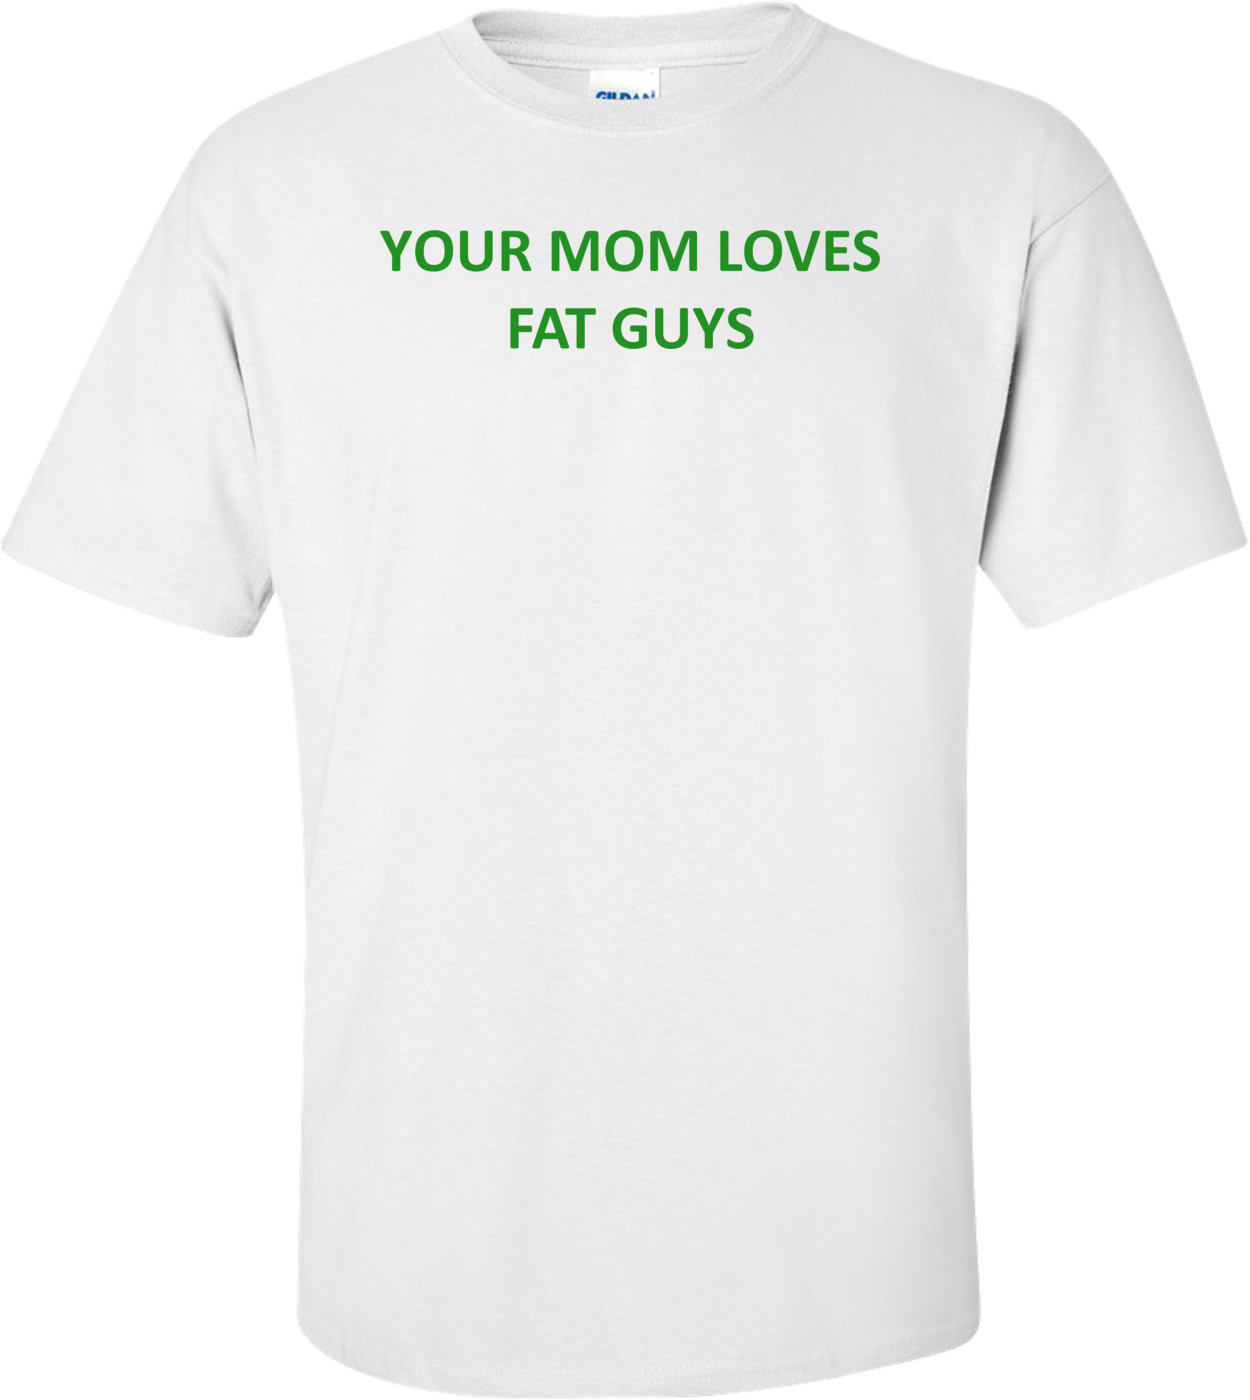 YOUR MOM LOVES FAT GUYS Shirt